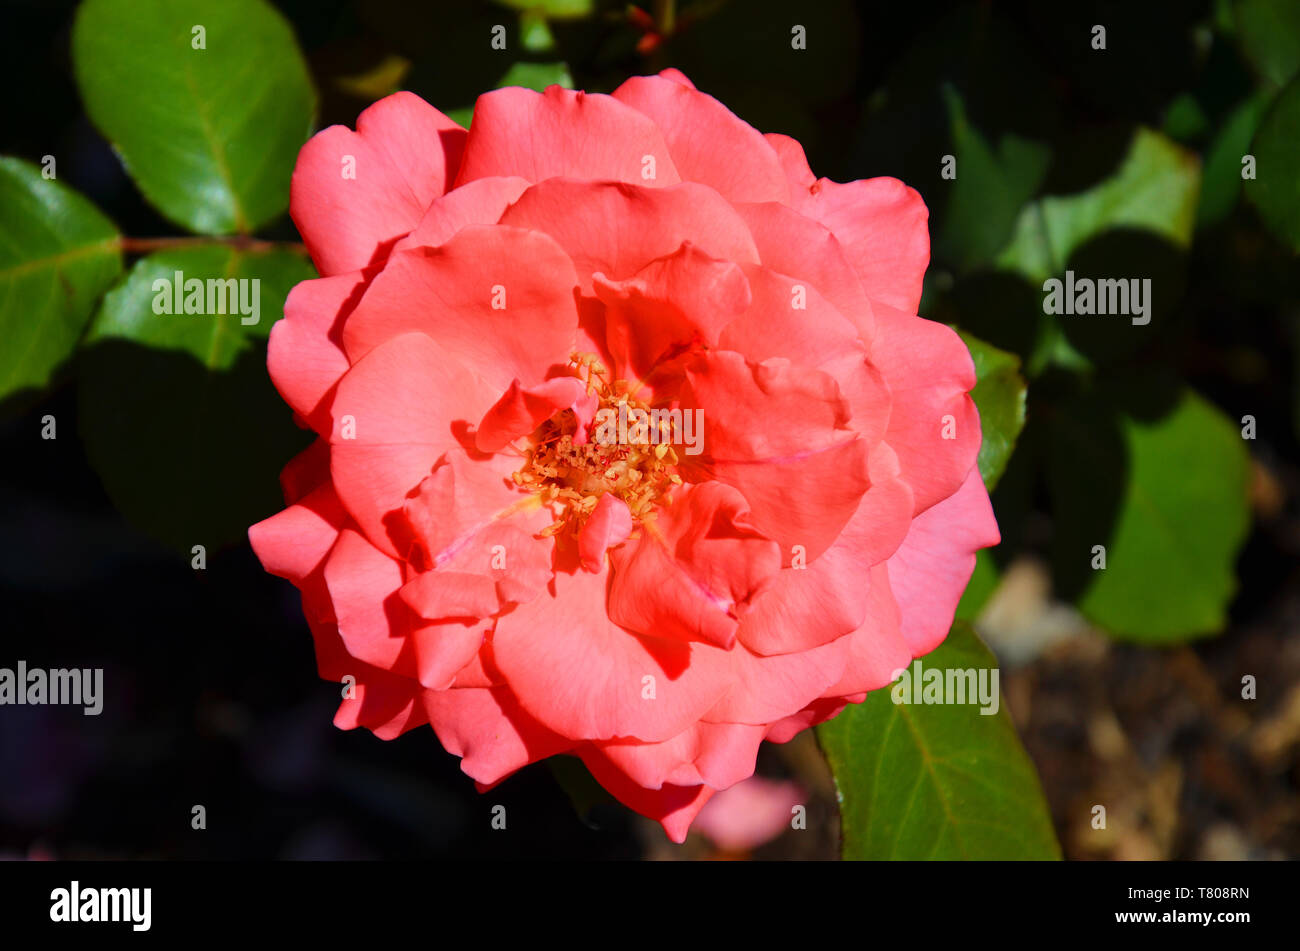 Beautiful detail of pink hybrid tea rose, Rosaceae, taken from above with blurred background. Hybrid tea is an informal horticultural classification for a group of garden roses. - Stock Image